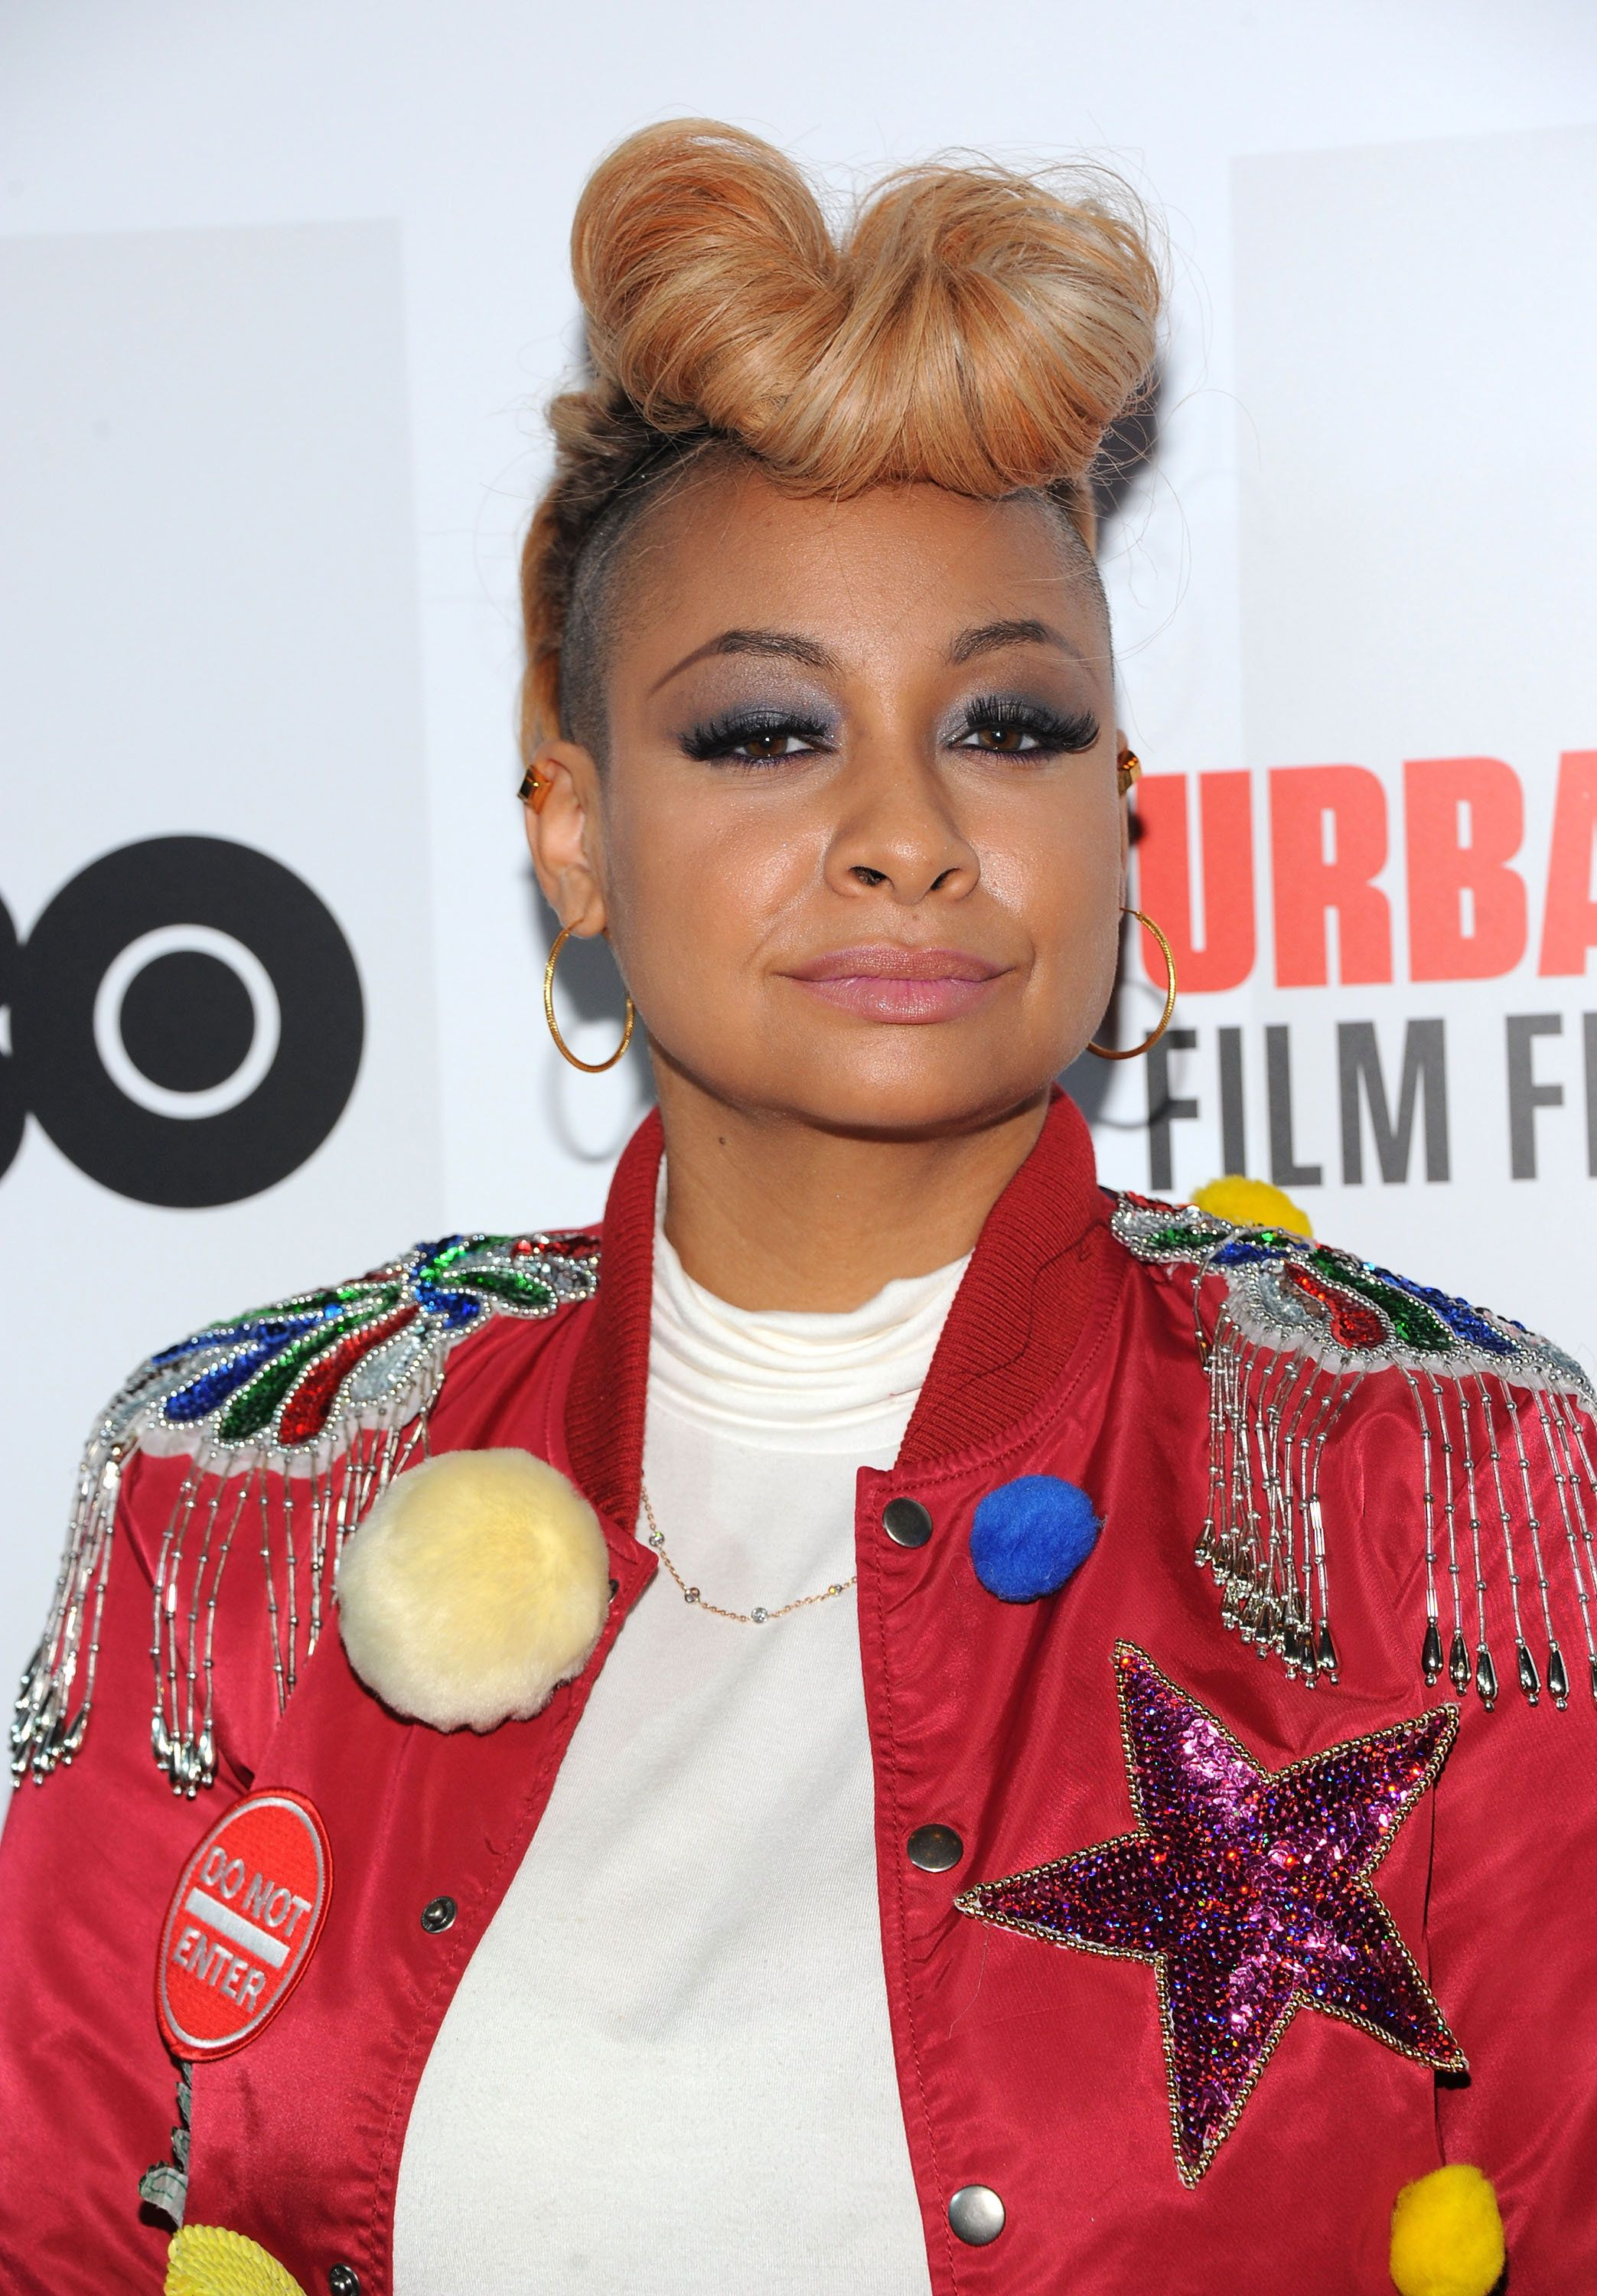 NEW YORK, NY - SEPTEMBER 25:  Actress Raven-Symone attends 2015 Urbanworld Film Festival at AMC Empire 25 theater on September 25, 2015 in New York City.  (Photo by Desiree Navarro/WireImage)